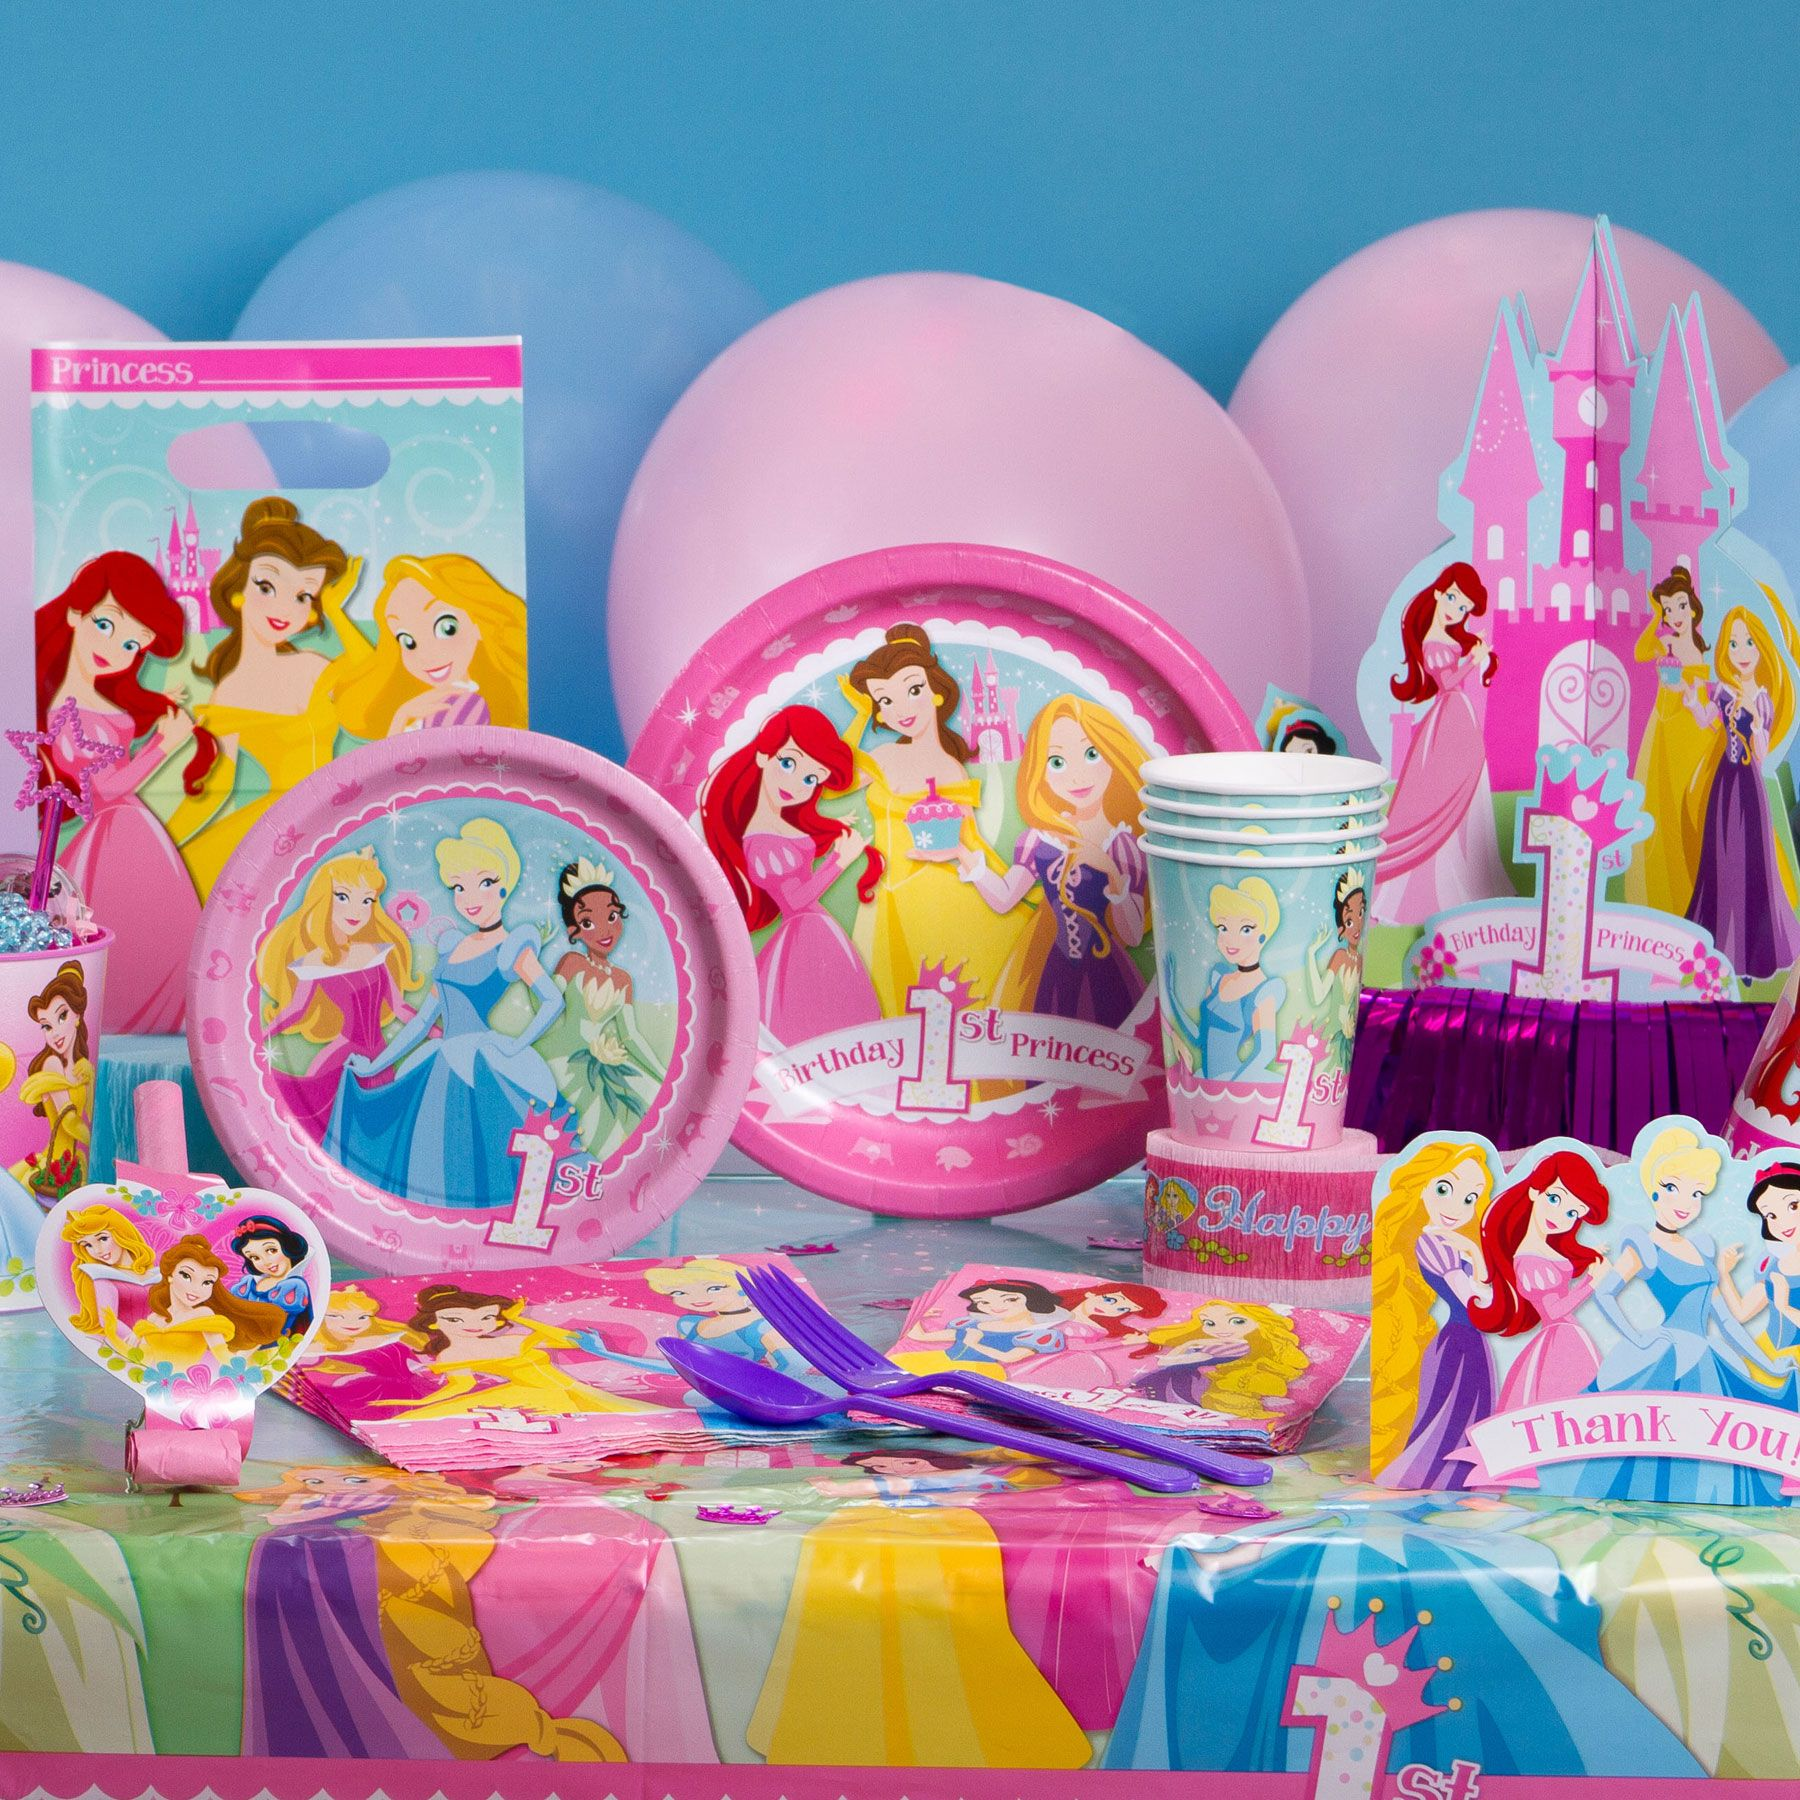 Turn Your Little Princess's First Birthday Into A Royal